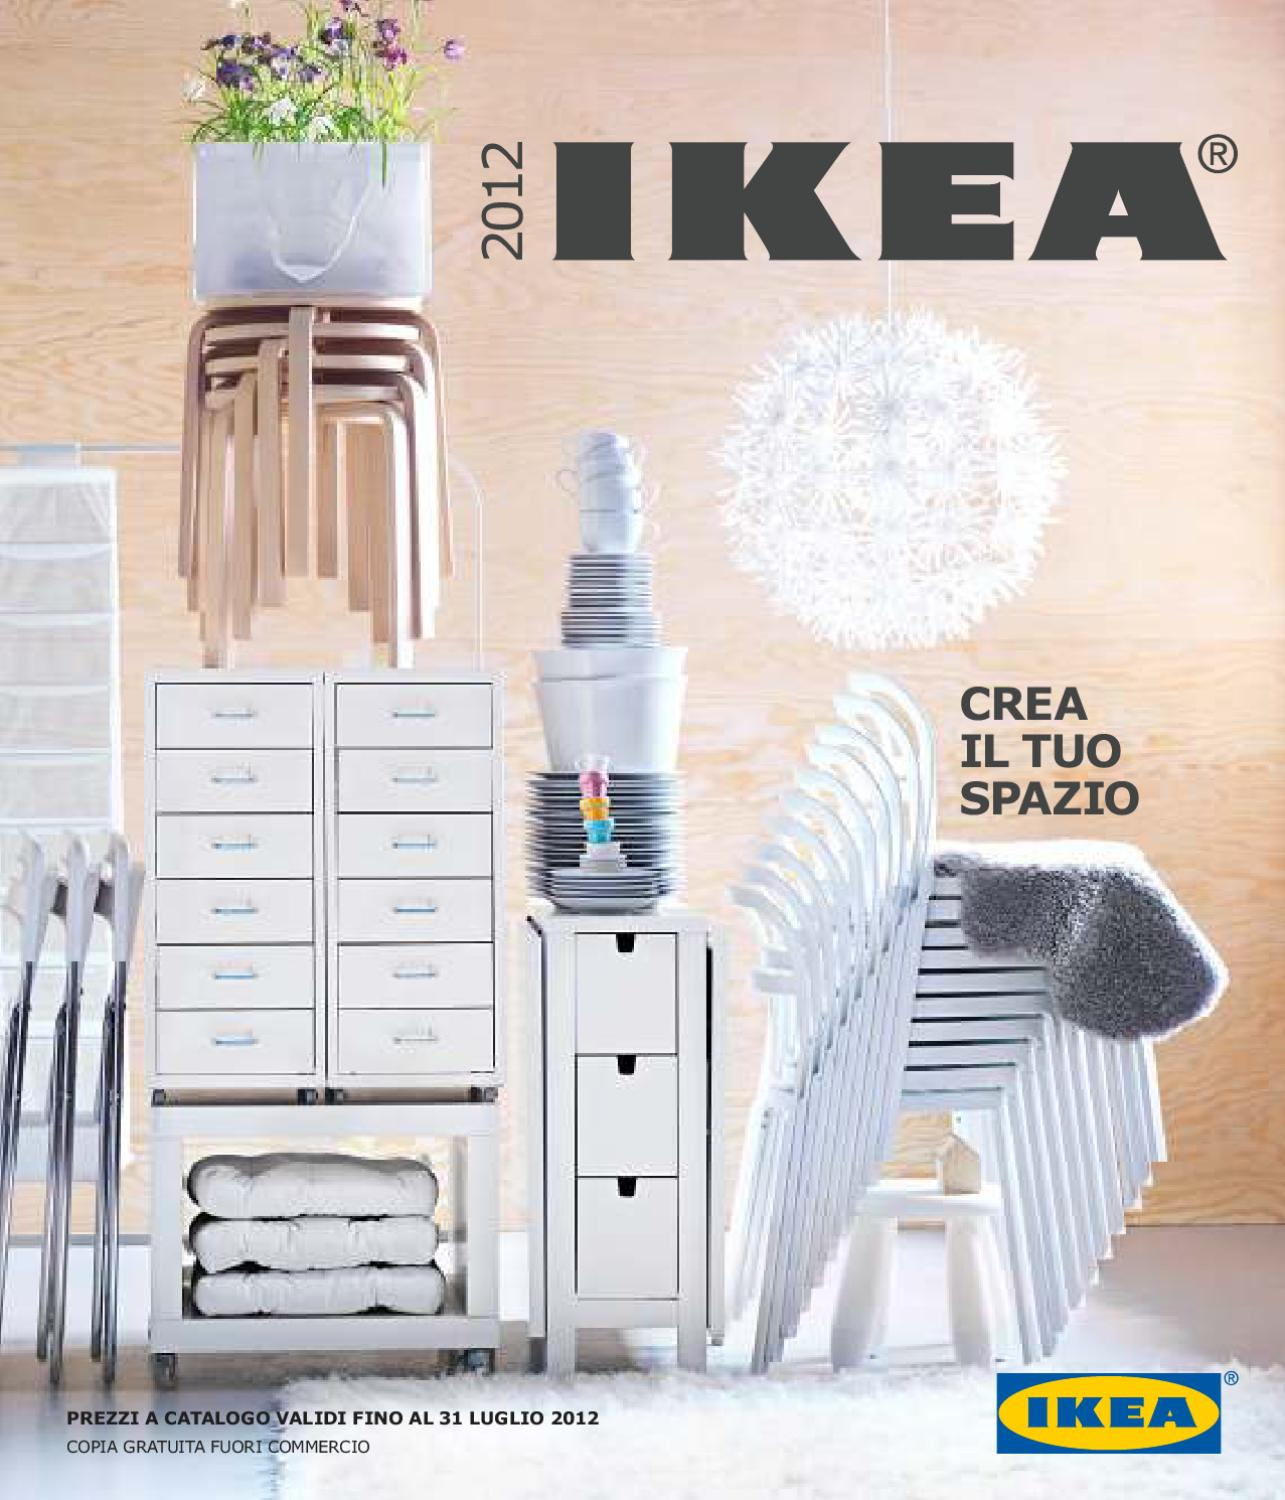 Ikea catalogo 2012 by commercializzando toscana issuu - Catalogo ikea scrivanie ...